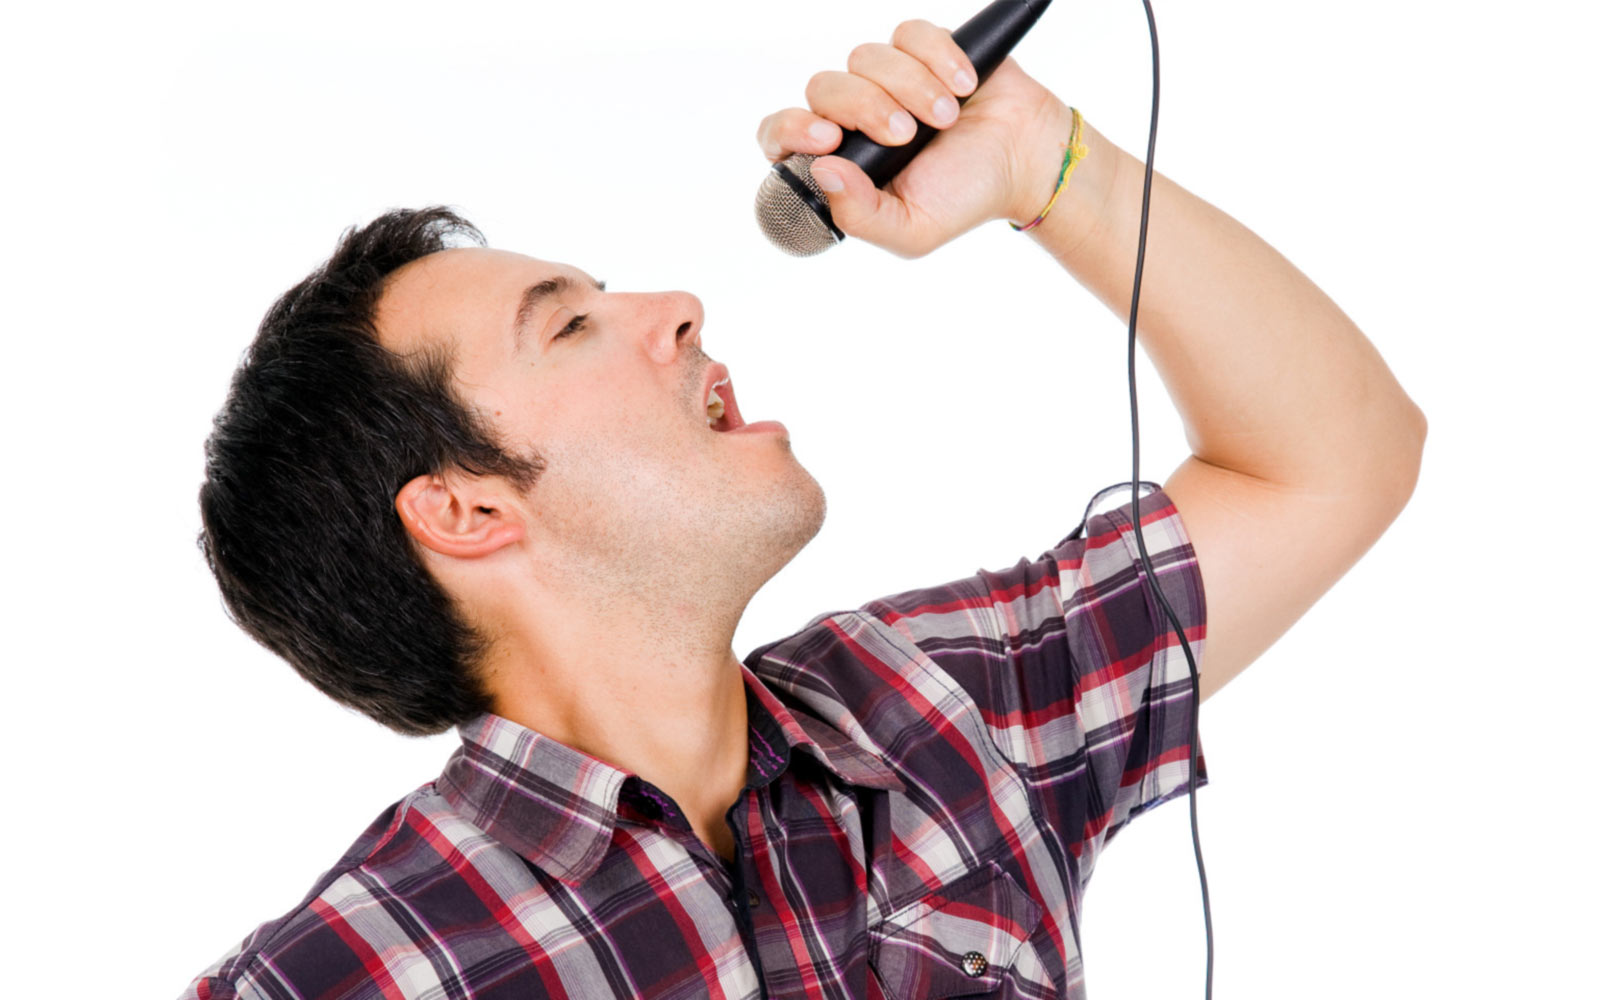 Man Singing In Microphone1